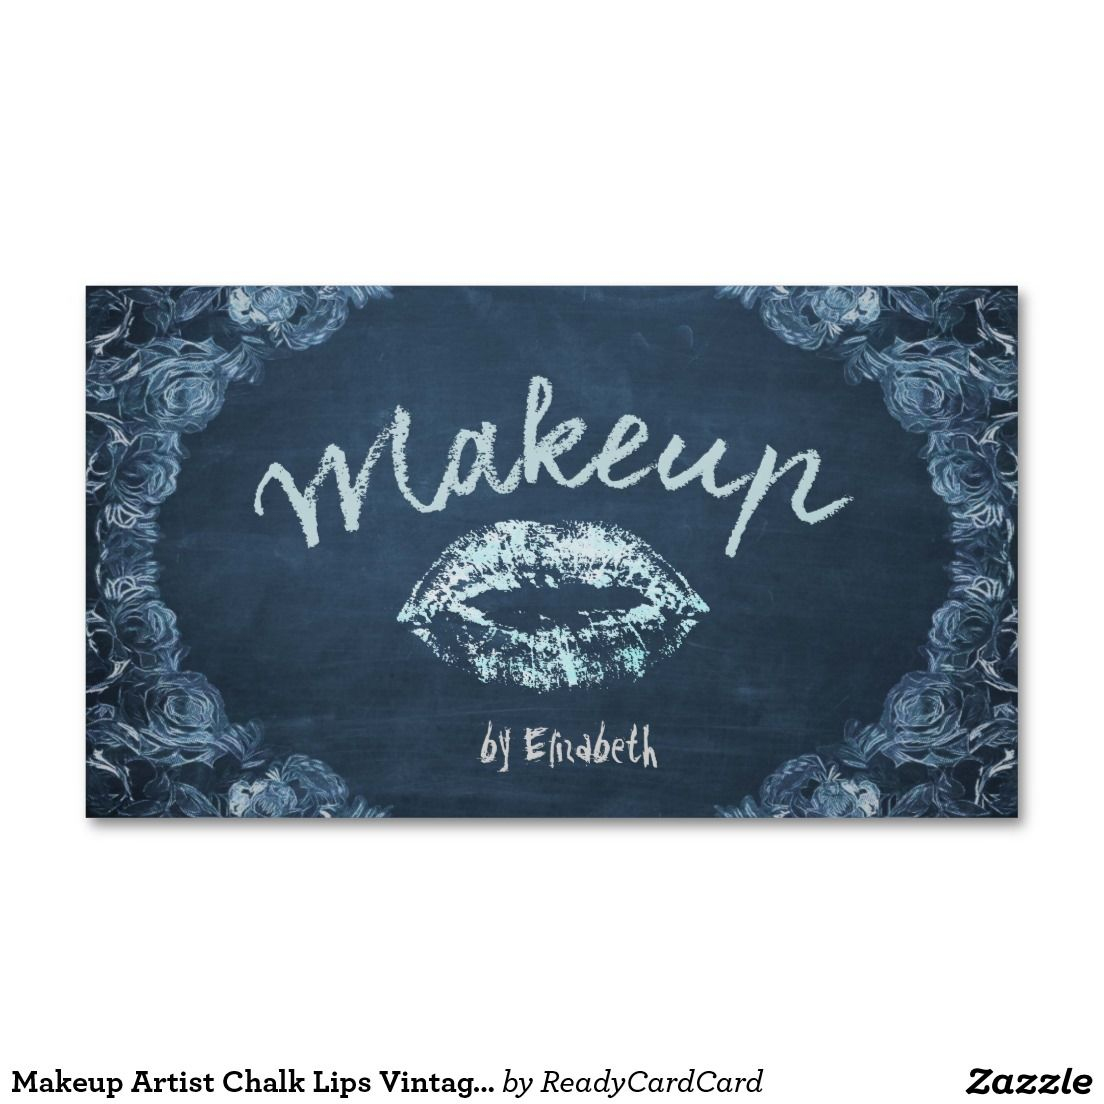 Makeup artist chalk lips vintage floral salon business card makeup artist chalk lips vintage floral salon double sided standard business cards pack of 100 reheart Image collections